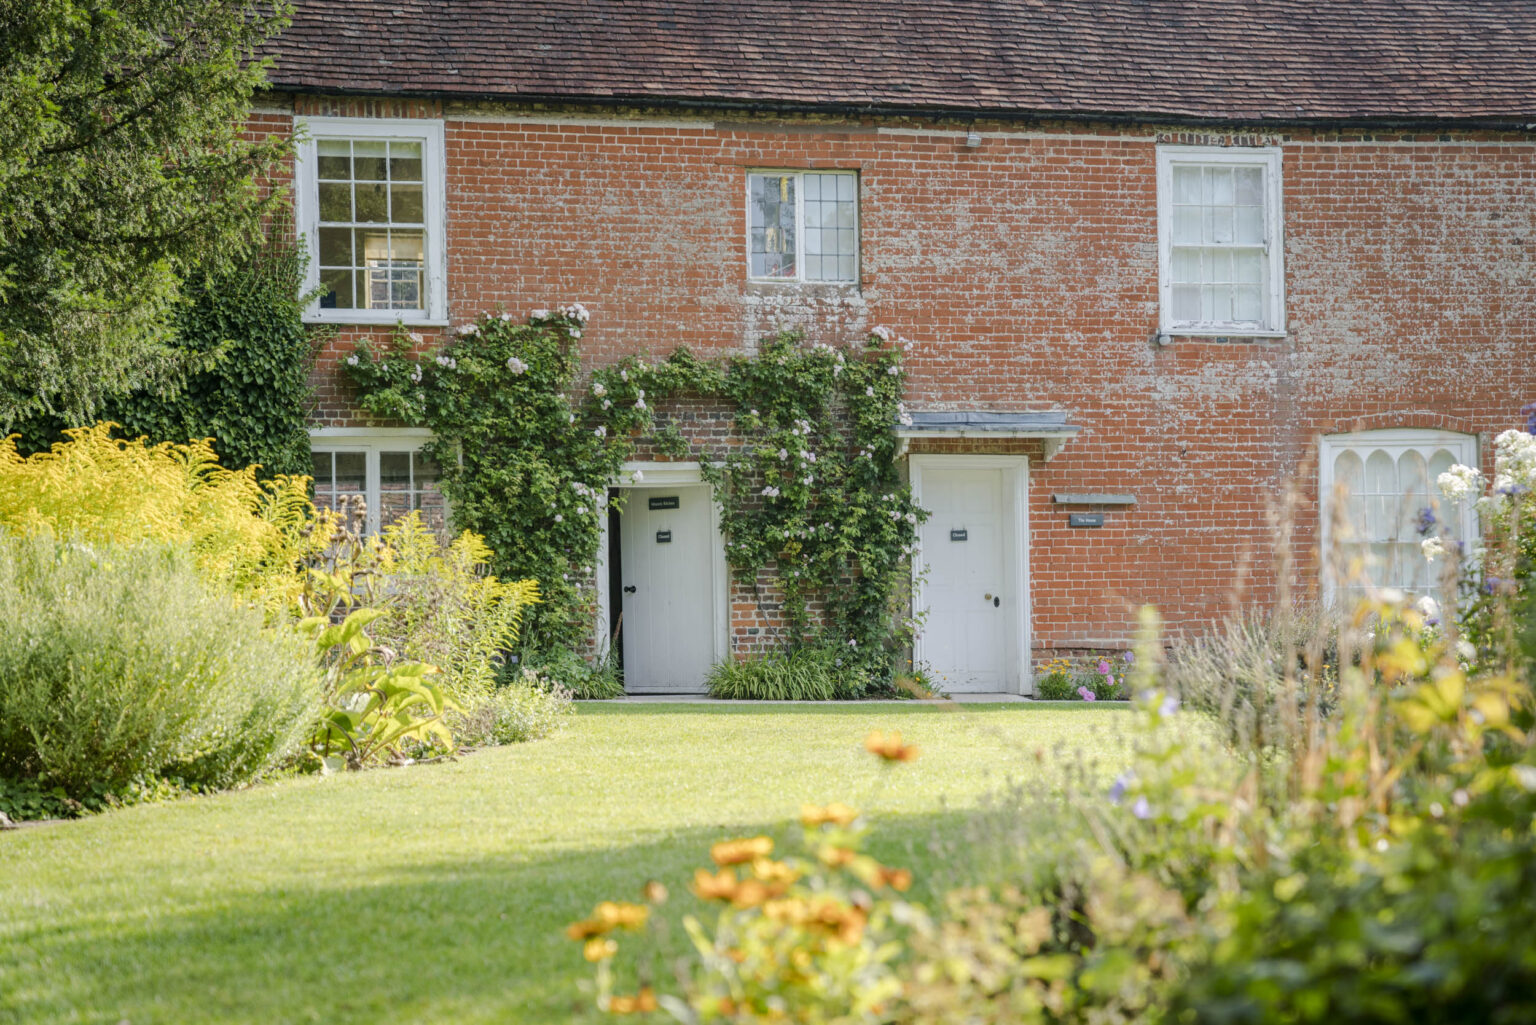 Jane Austen's House Writing Competition